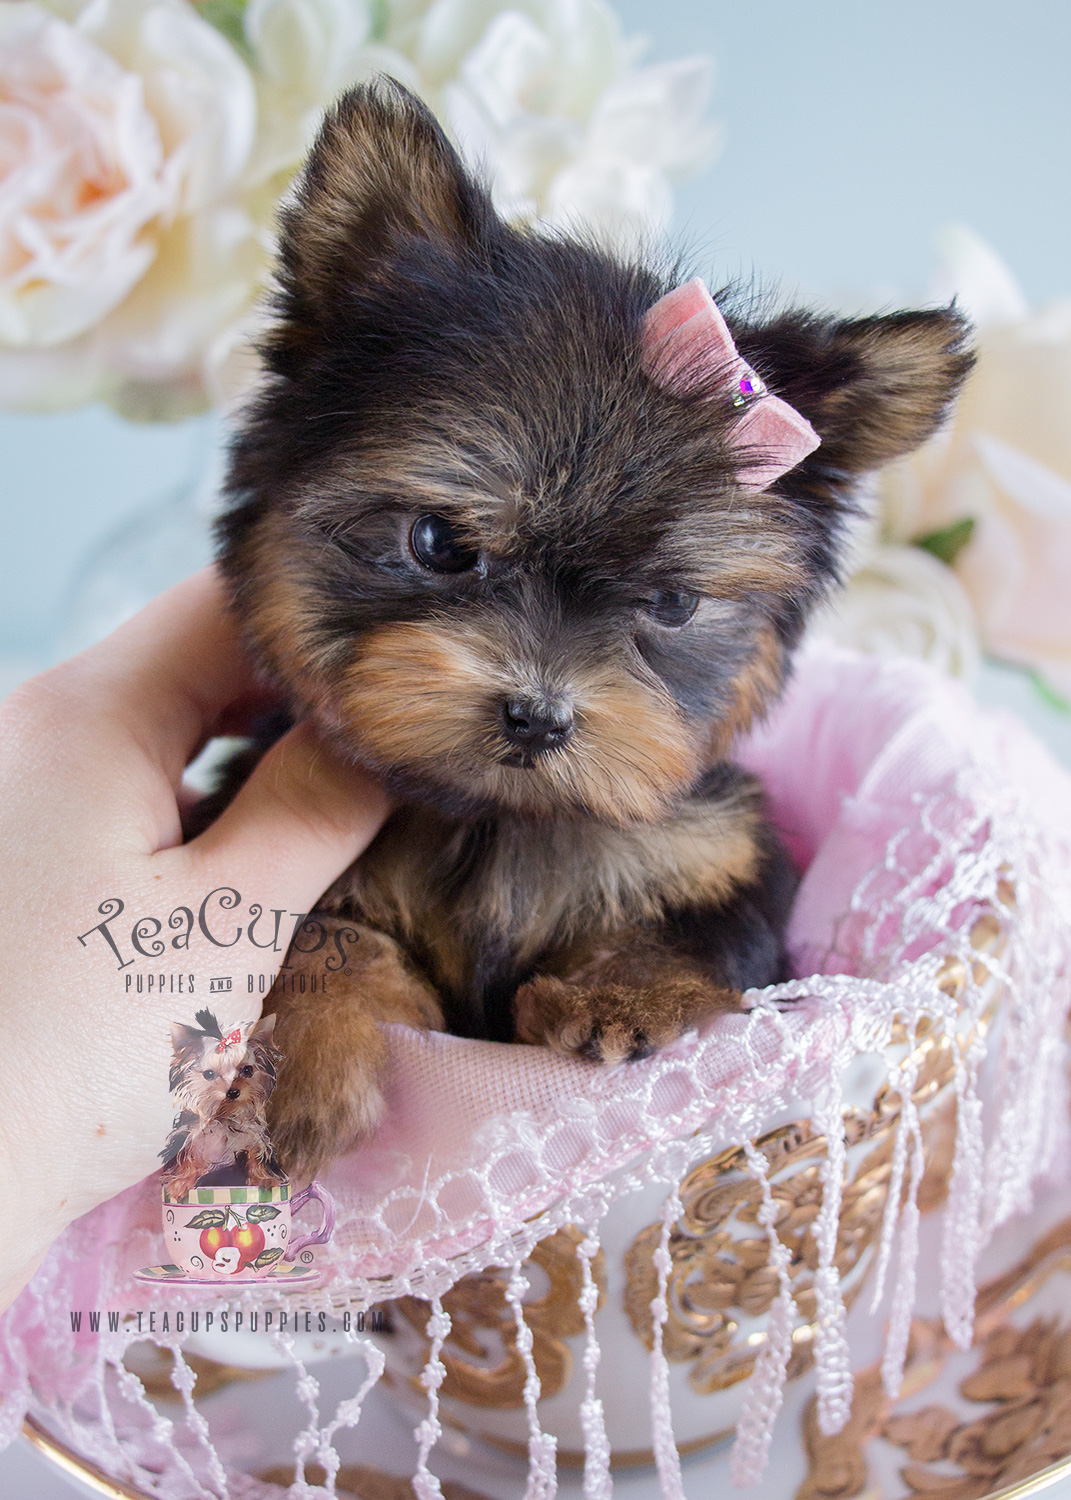 Tiniest Teacup Yorkie Puppy For Sale Teacups Puppies